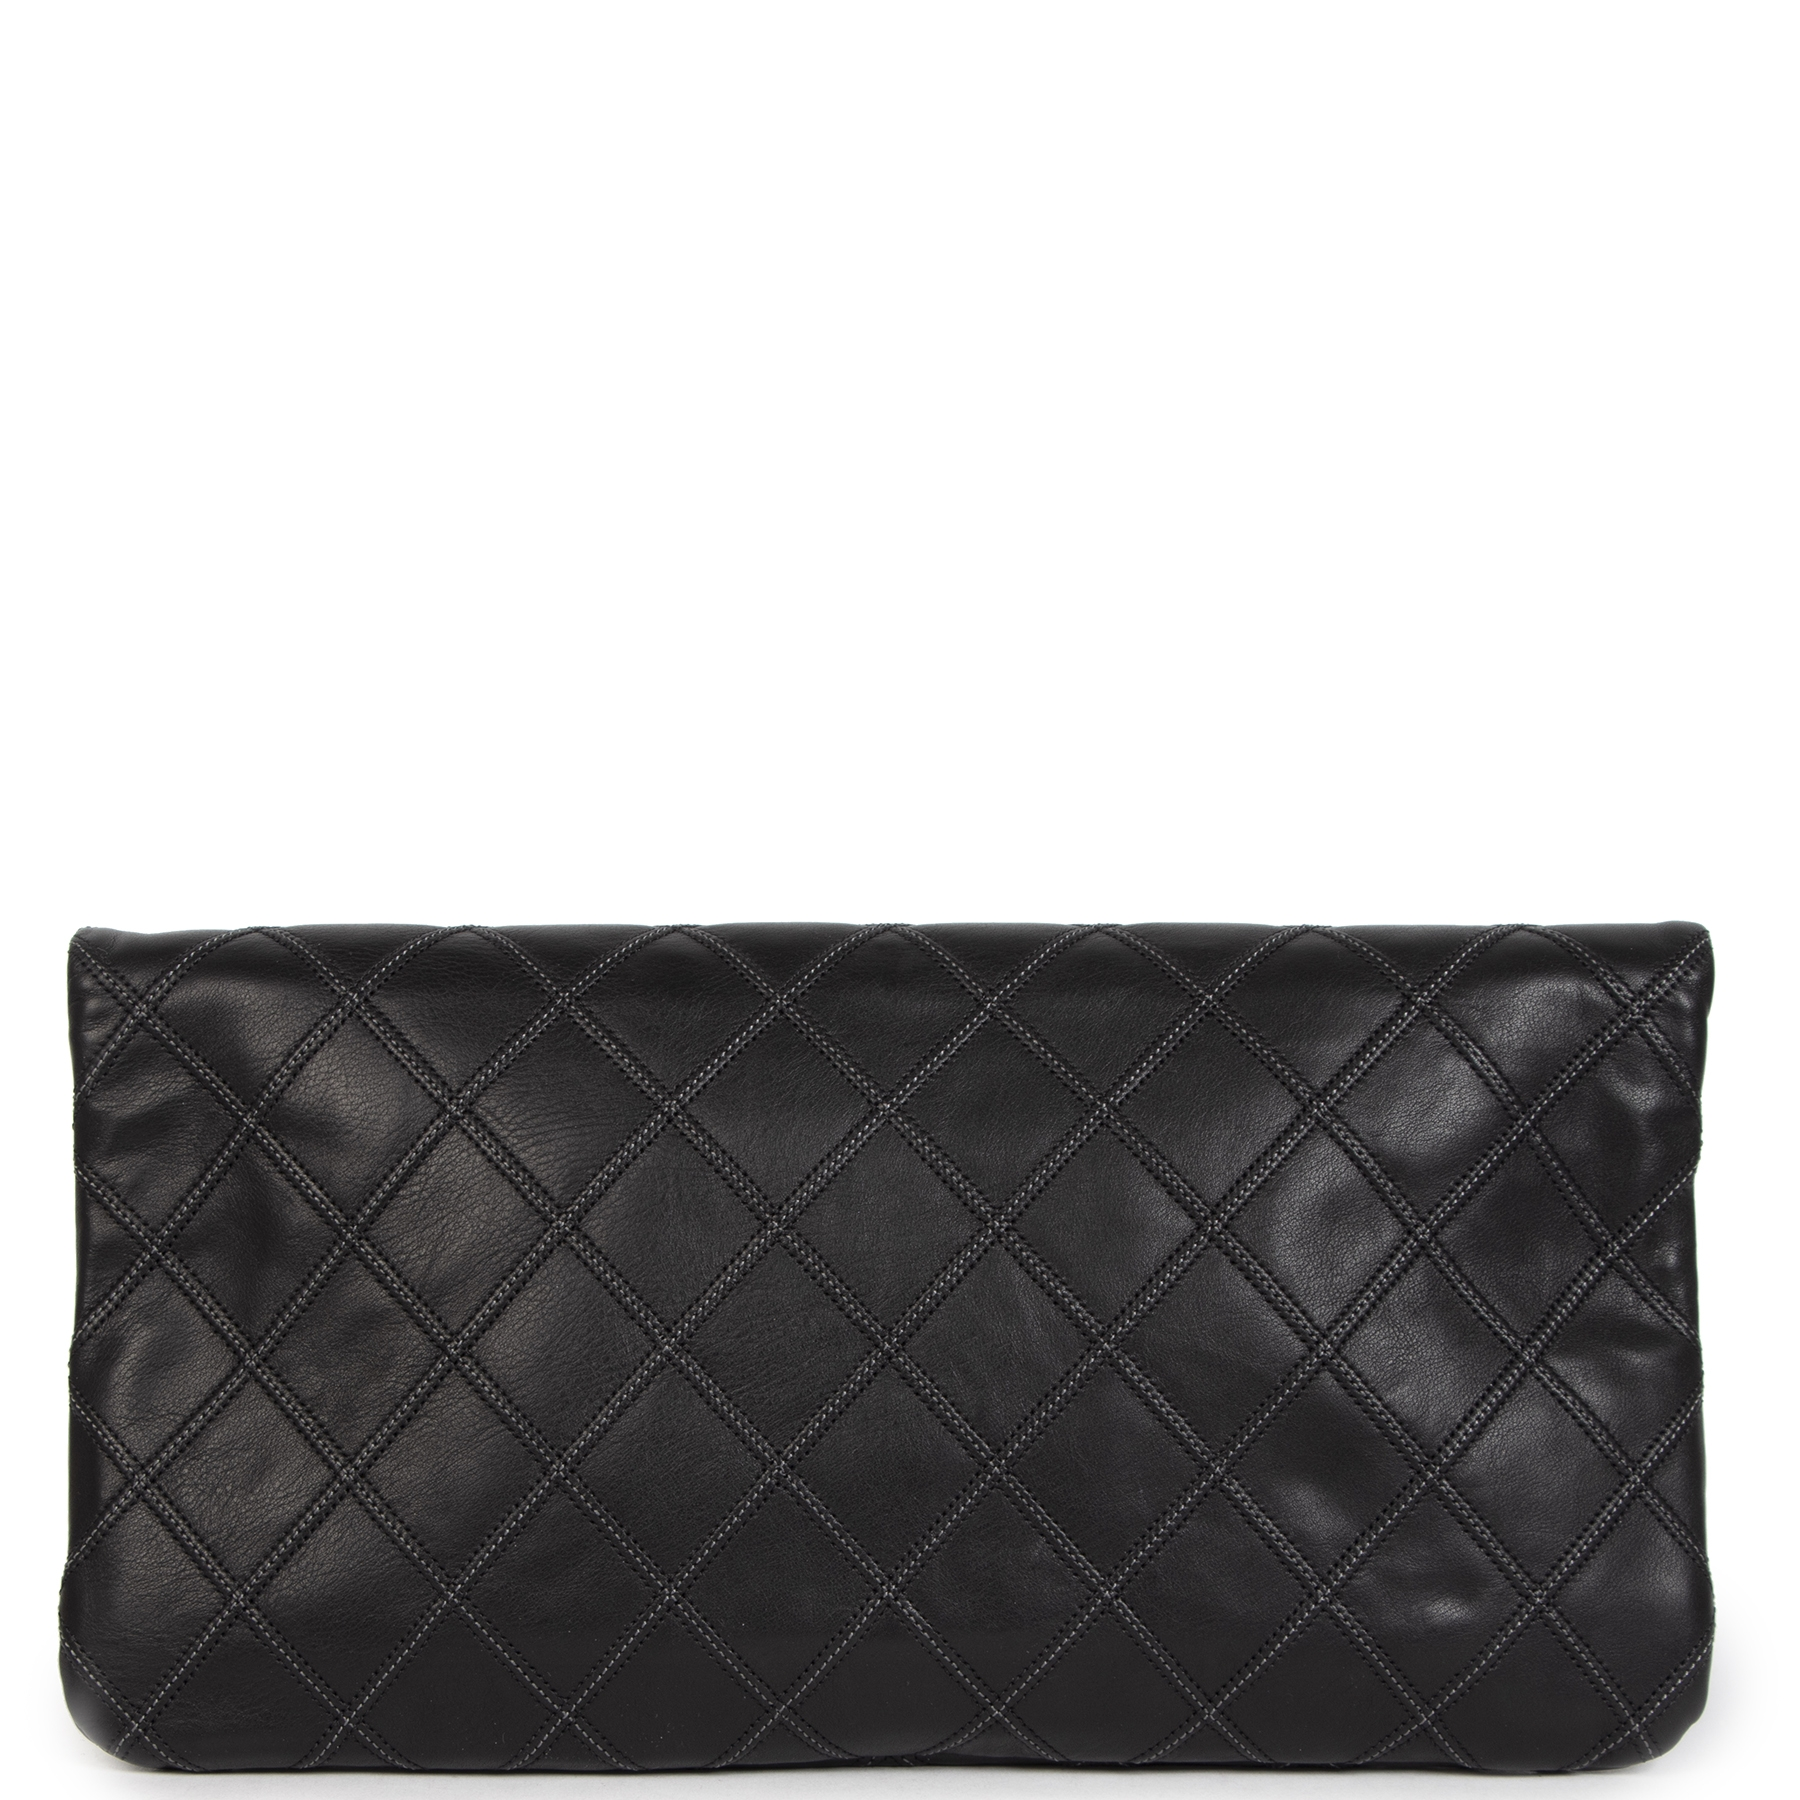 We buy and sell your authentic Chanel Black Quilted Clutch Bag for the best price